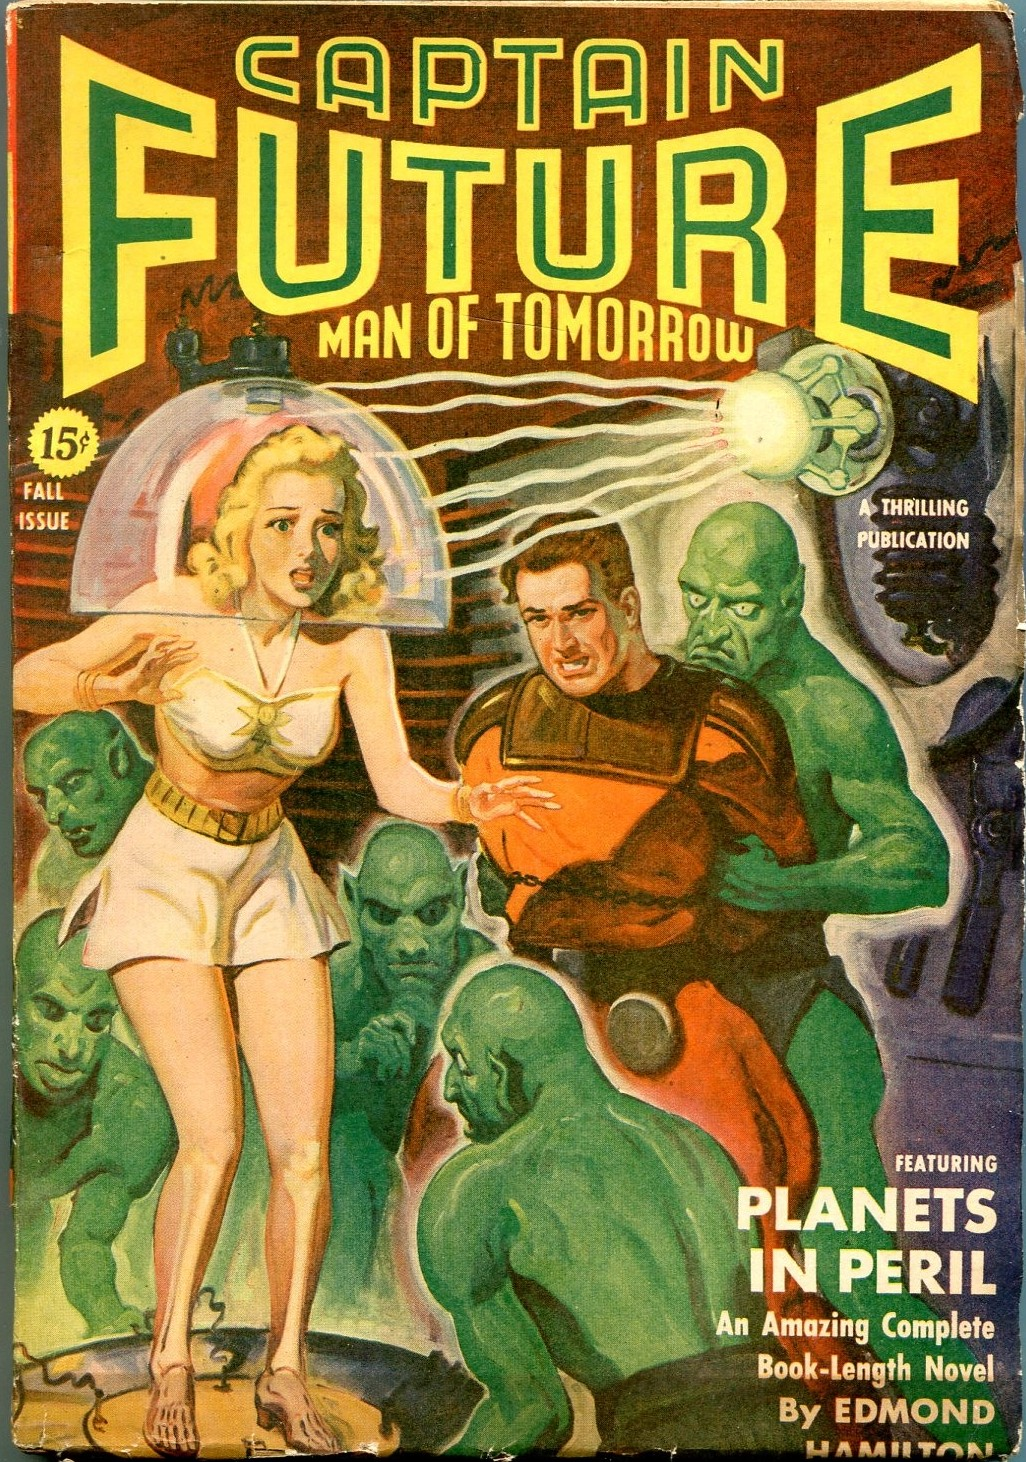 https://pulpcovers.com/wp-content/uploads/2014/07/Captain-Future-Fall-1942.jpg